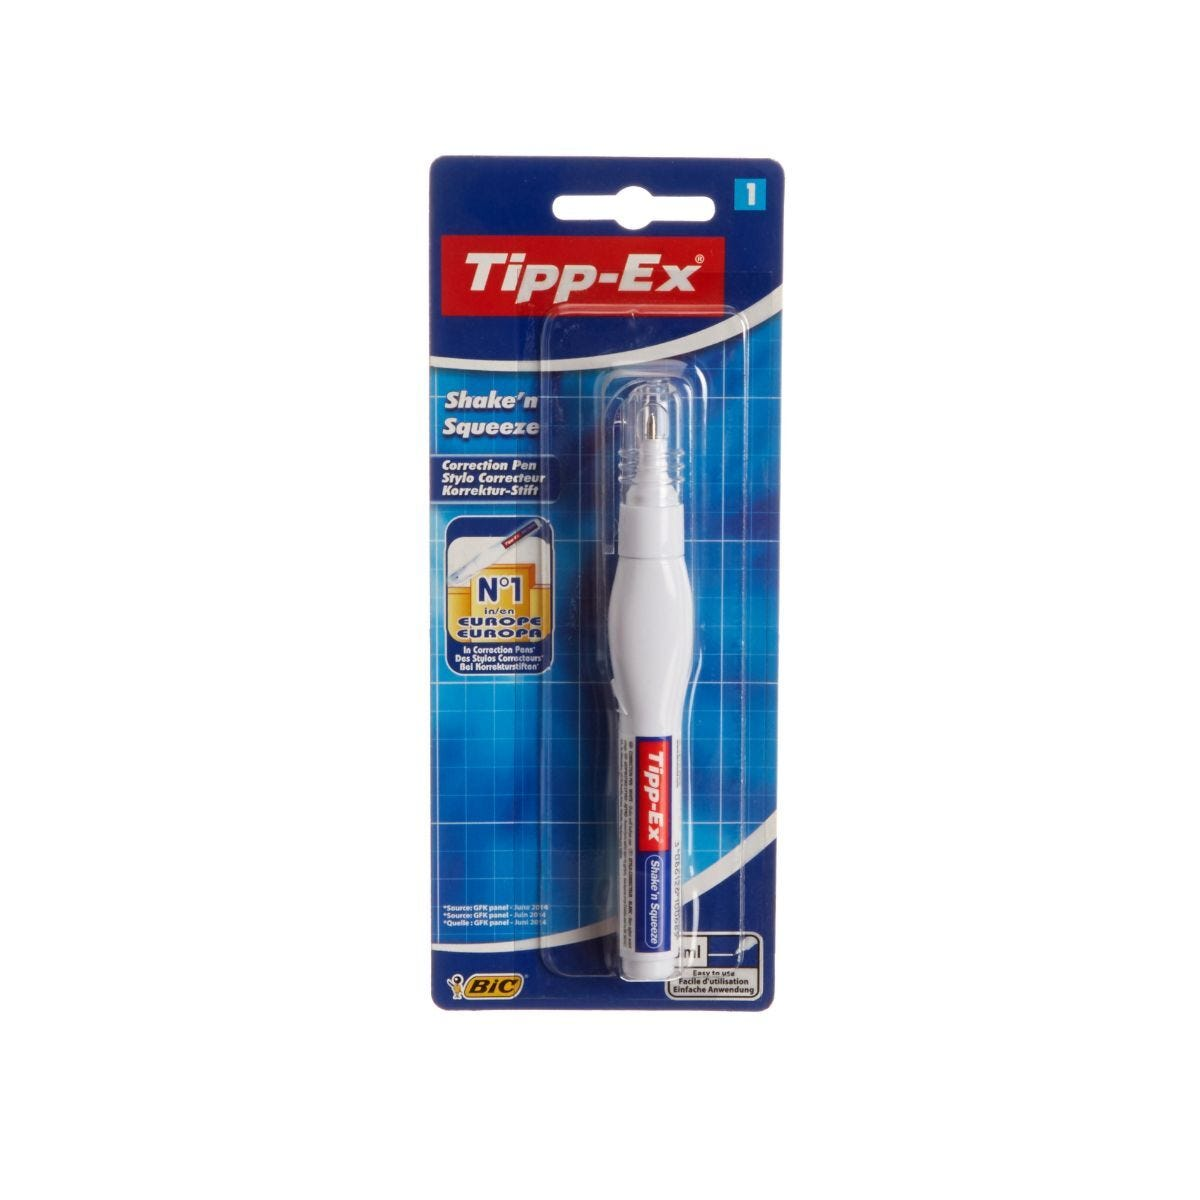 Tippex Shake n Squeeze Correction Pen